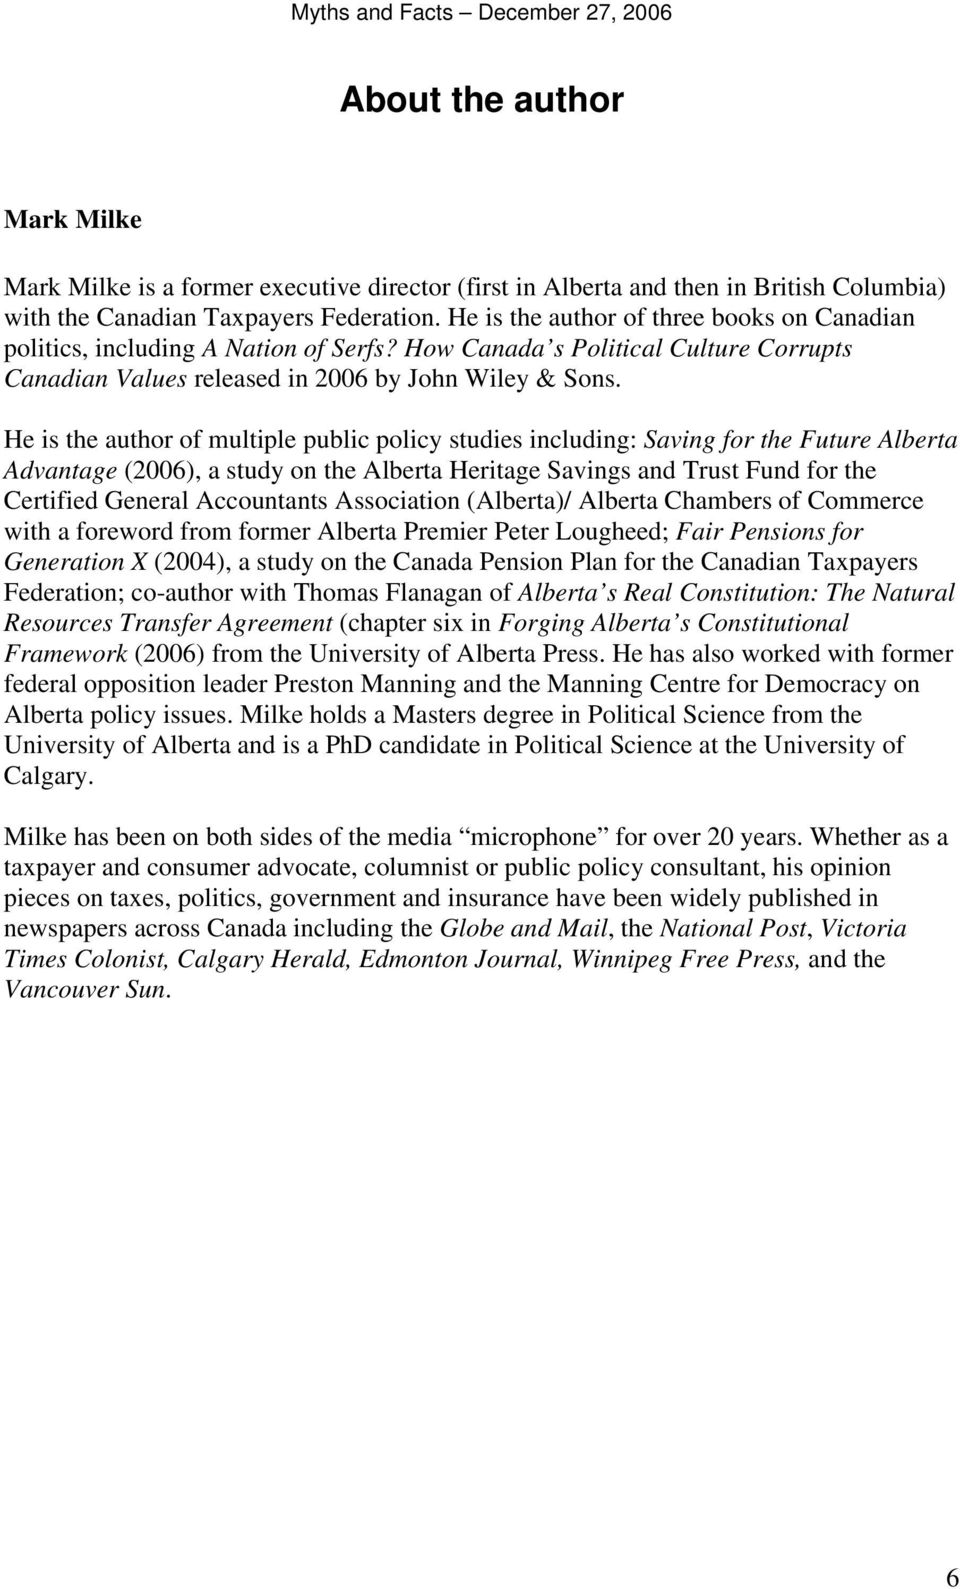 He is the author of multiple public policy studies including: Saving for the Future Alberta Advantage (2006), a study on the Alberta Heritage Savings and Trust Fund for the Certified General